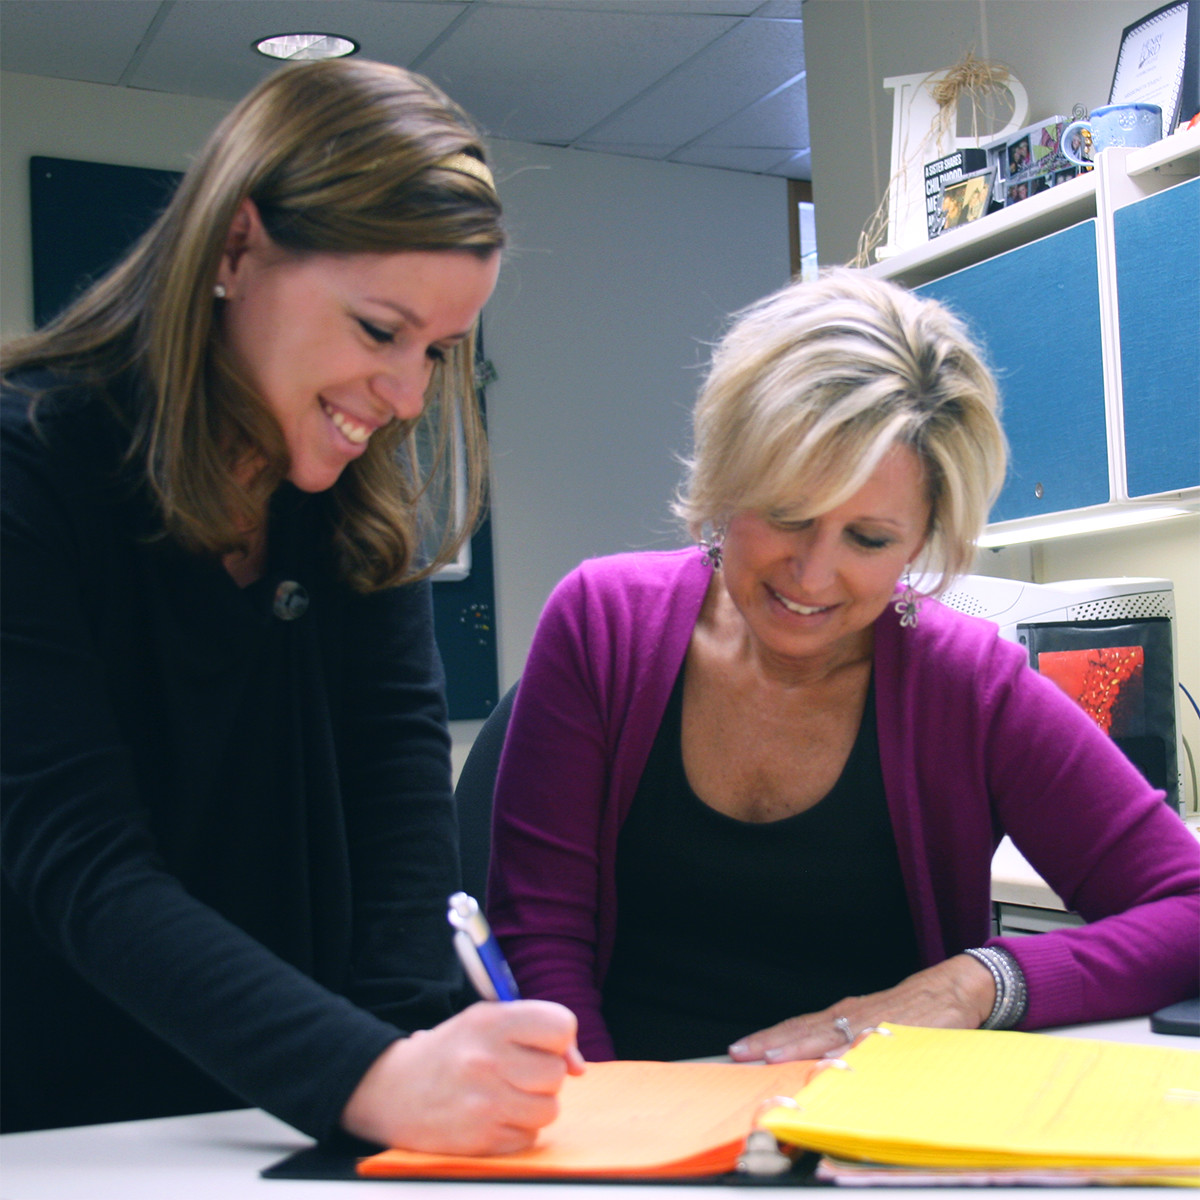 A staff member helping a student fill out paperwork